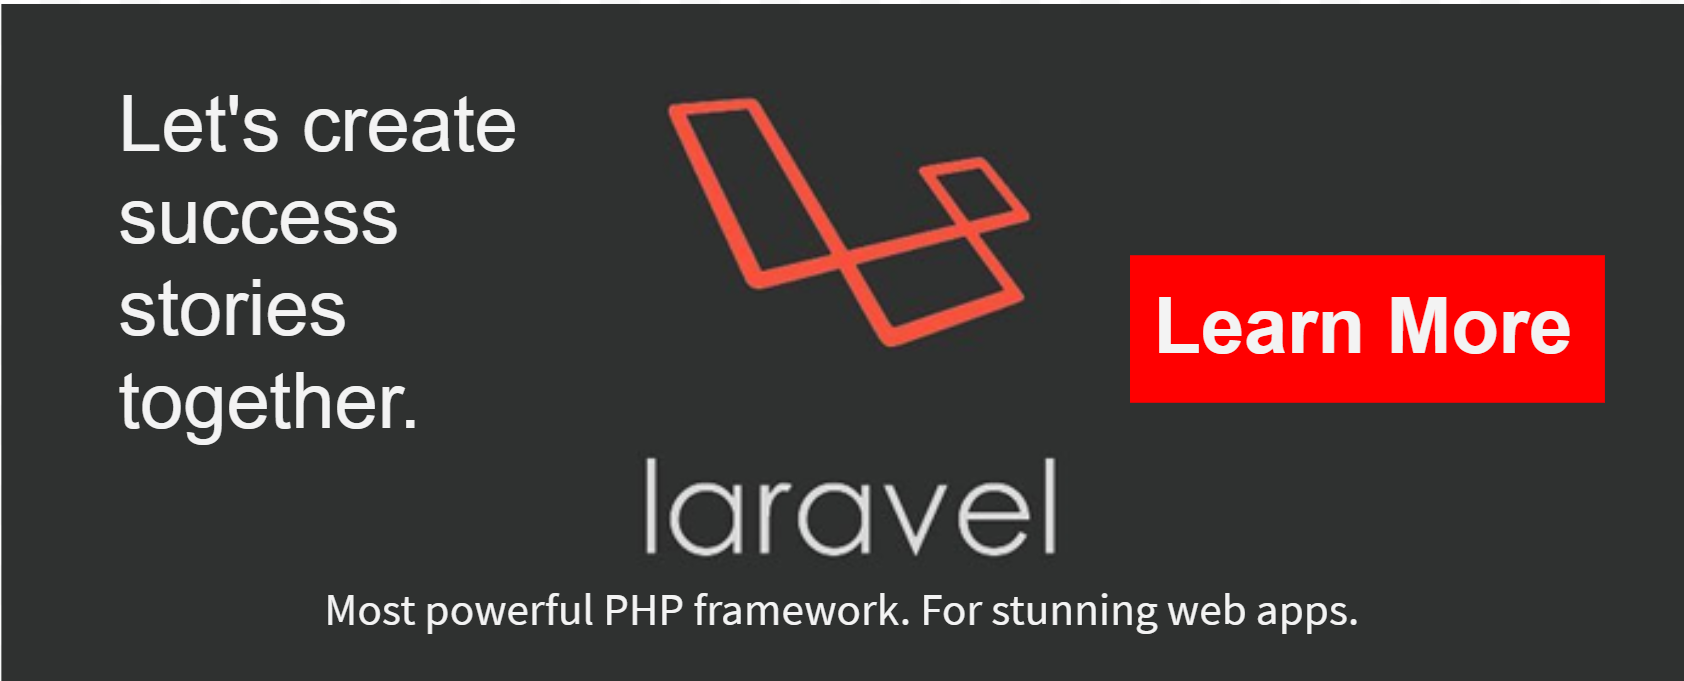 Top 10 Laravel Best Practices You Should Follow - Innofied